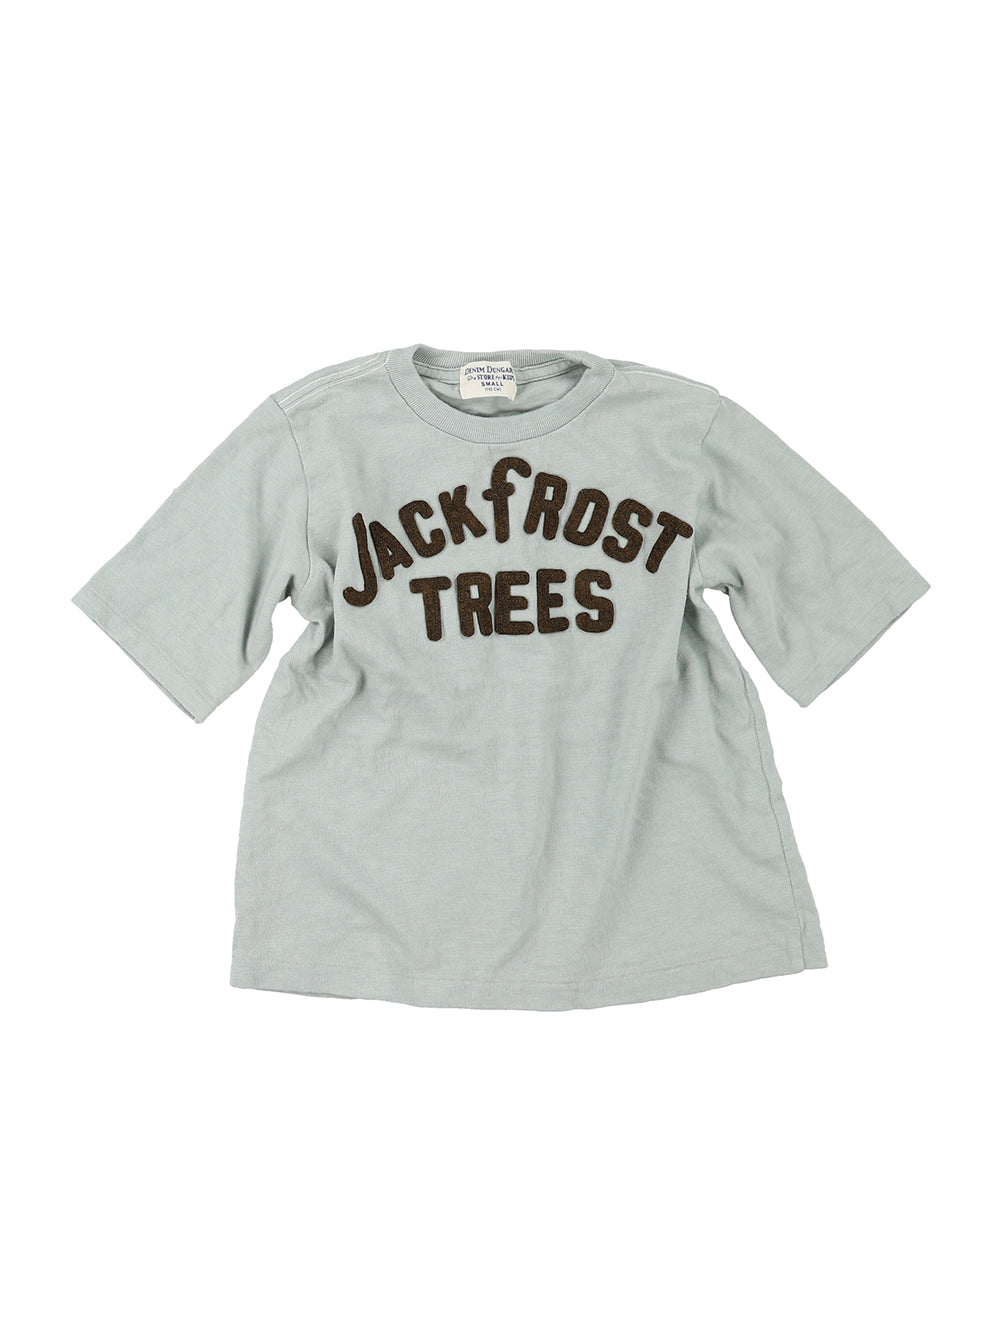 Jack Frost Trees T-Shirt